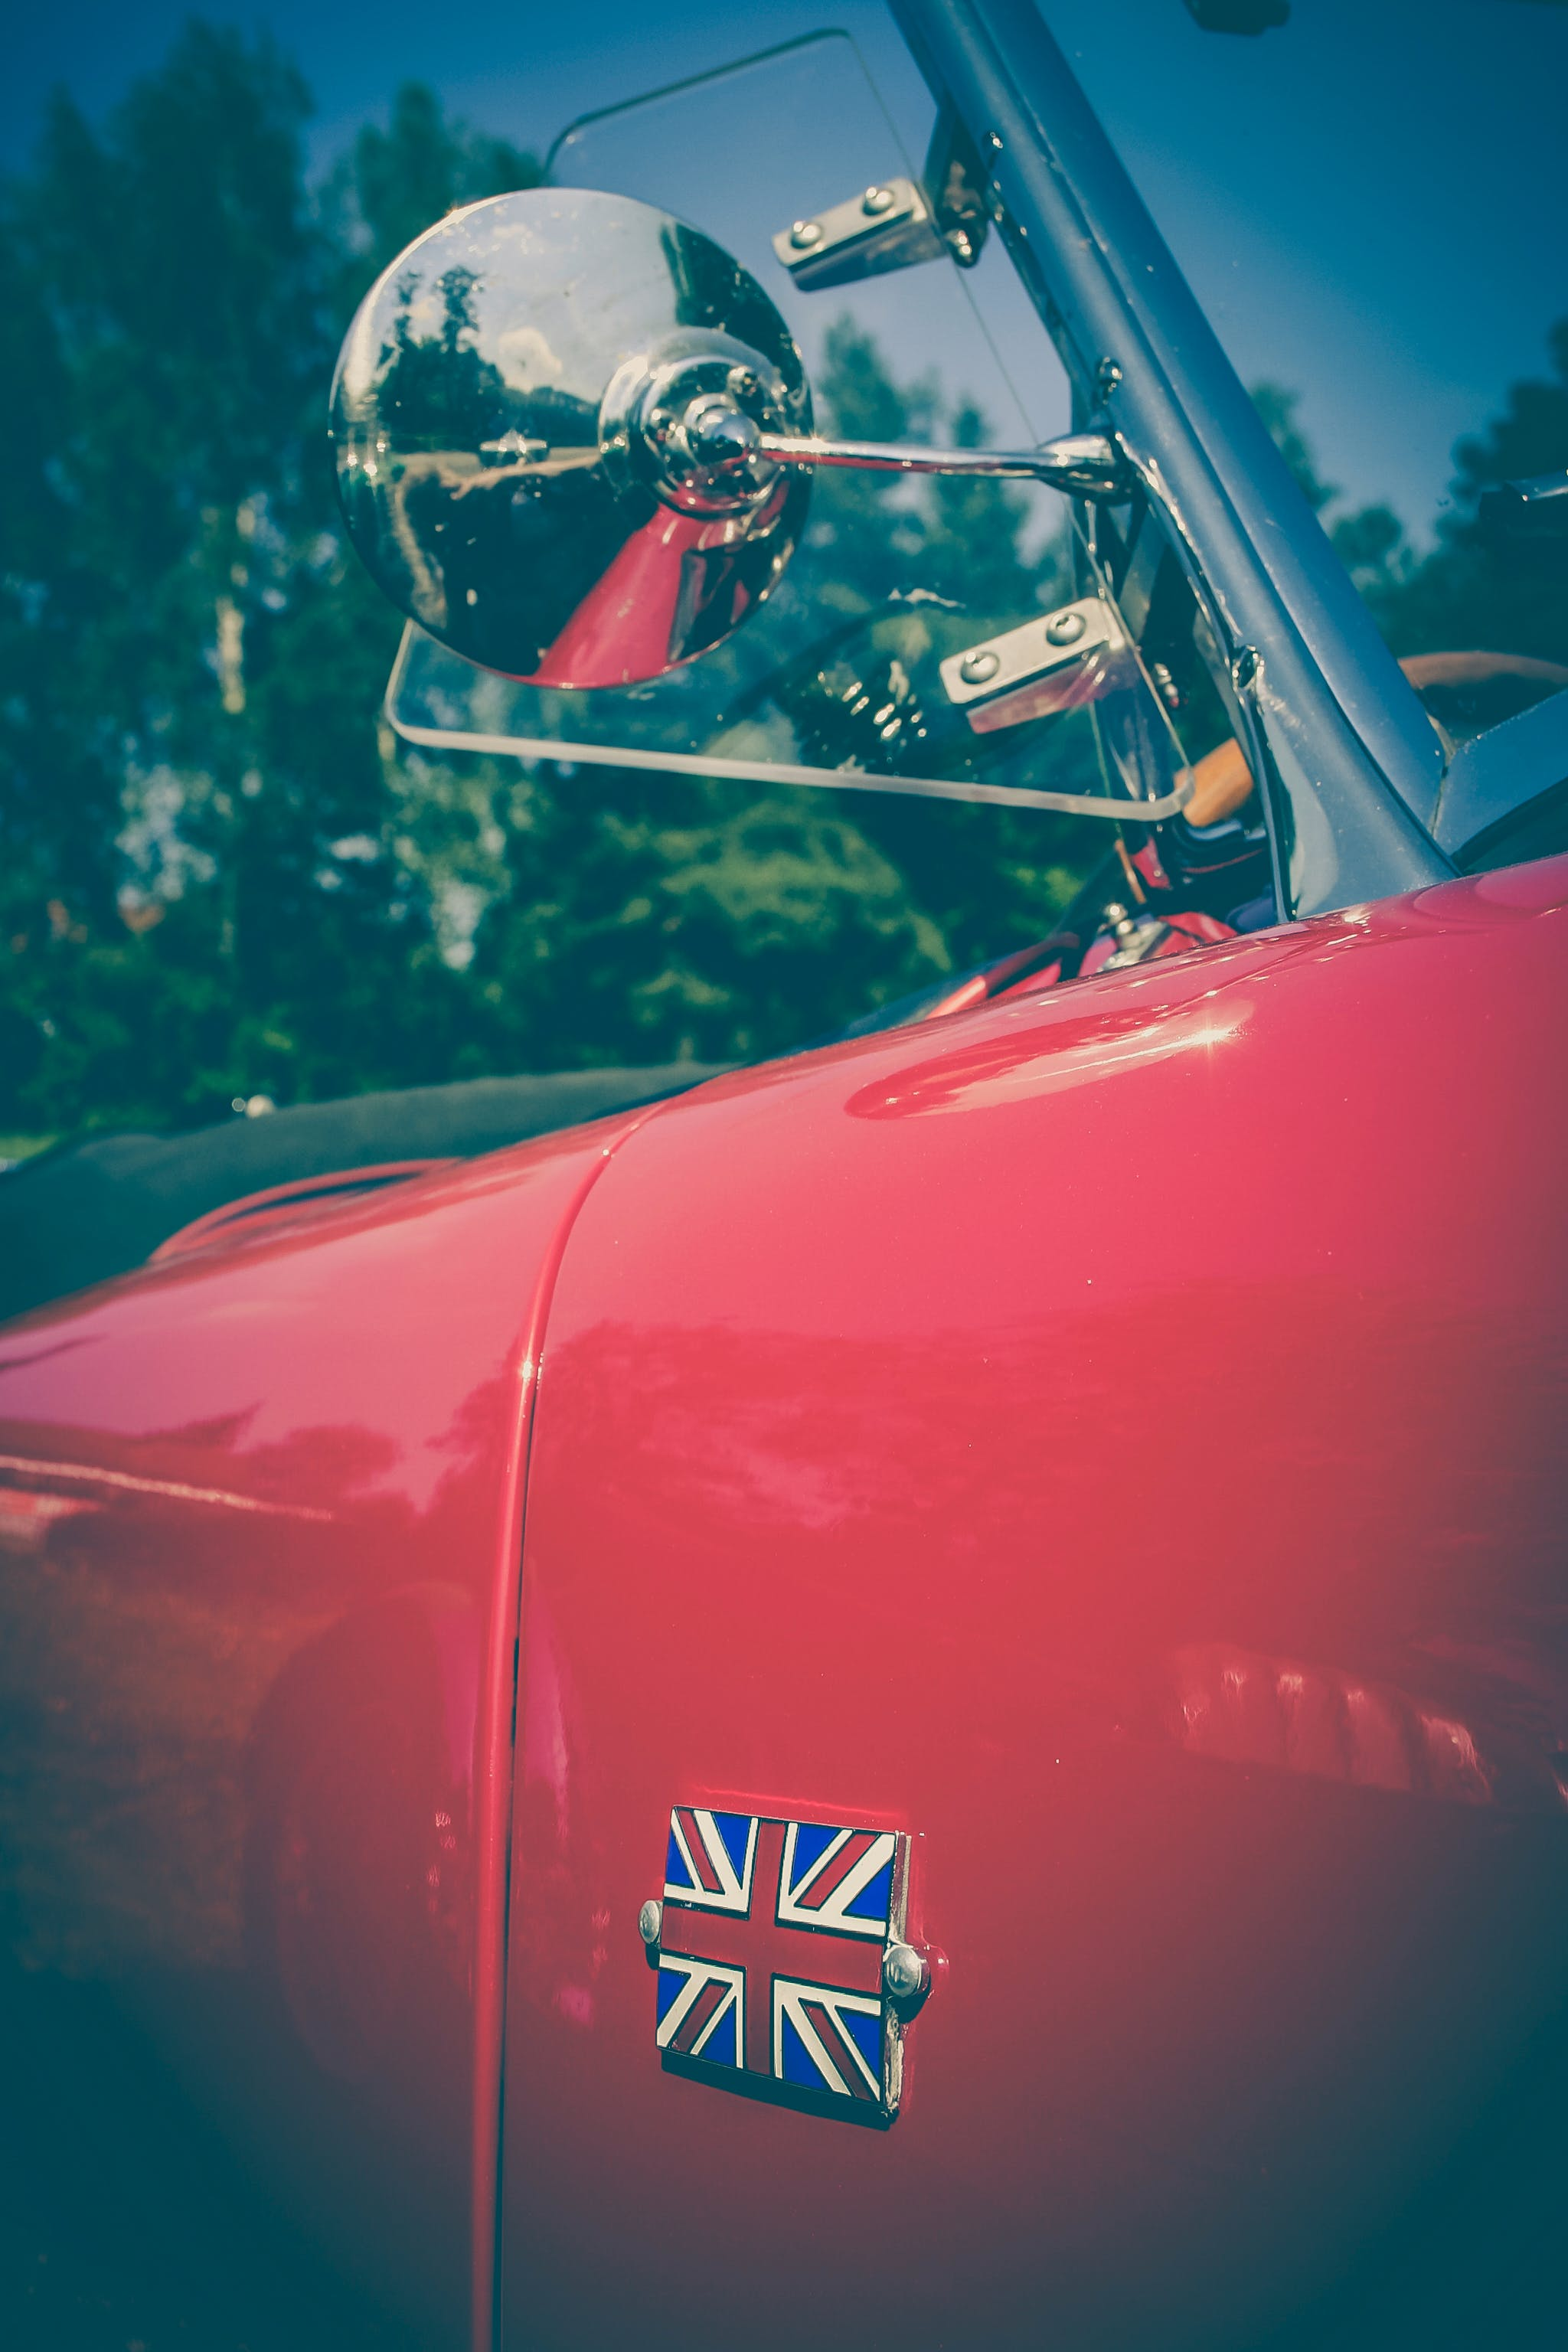 Free stock photo of car, vintage, chrome, classic